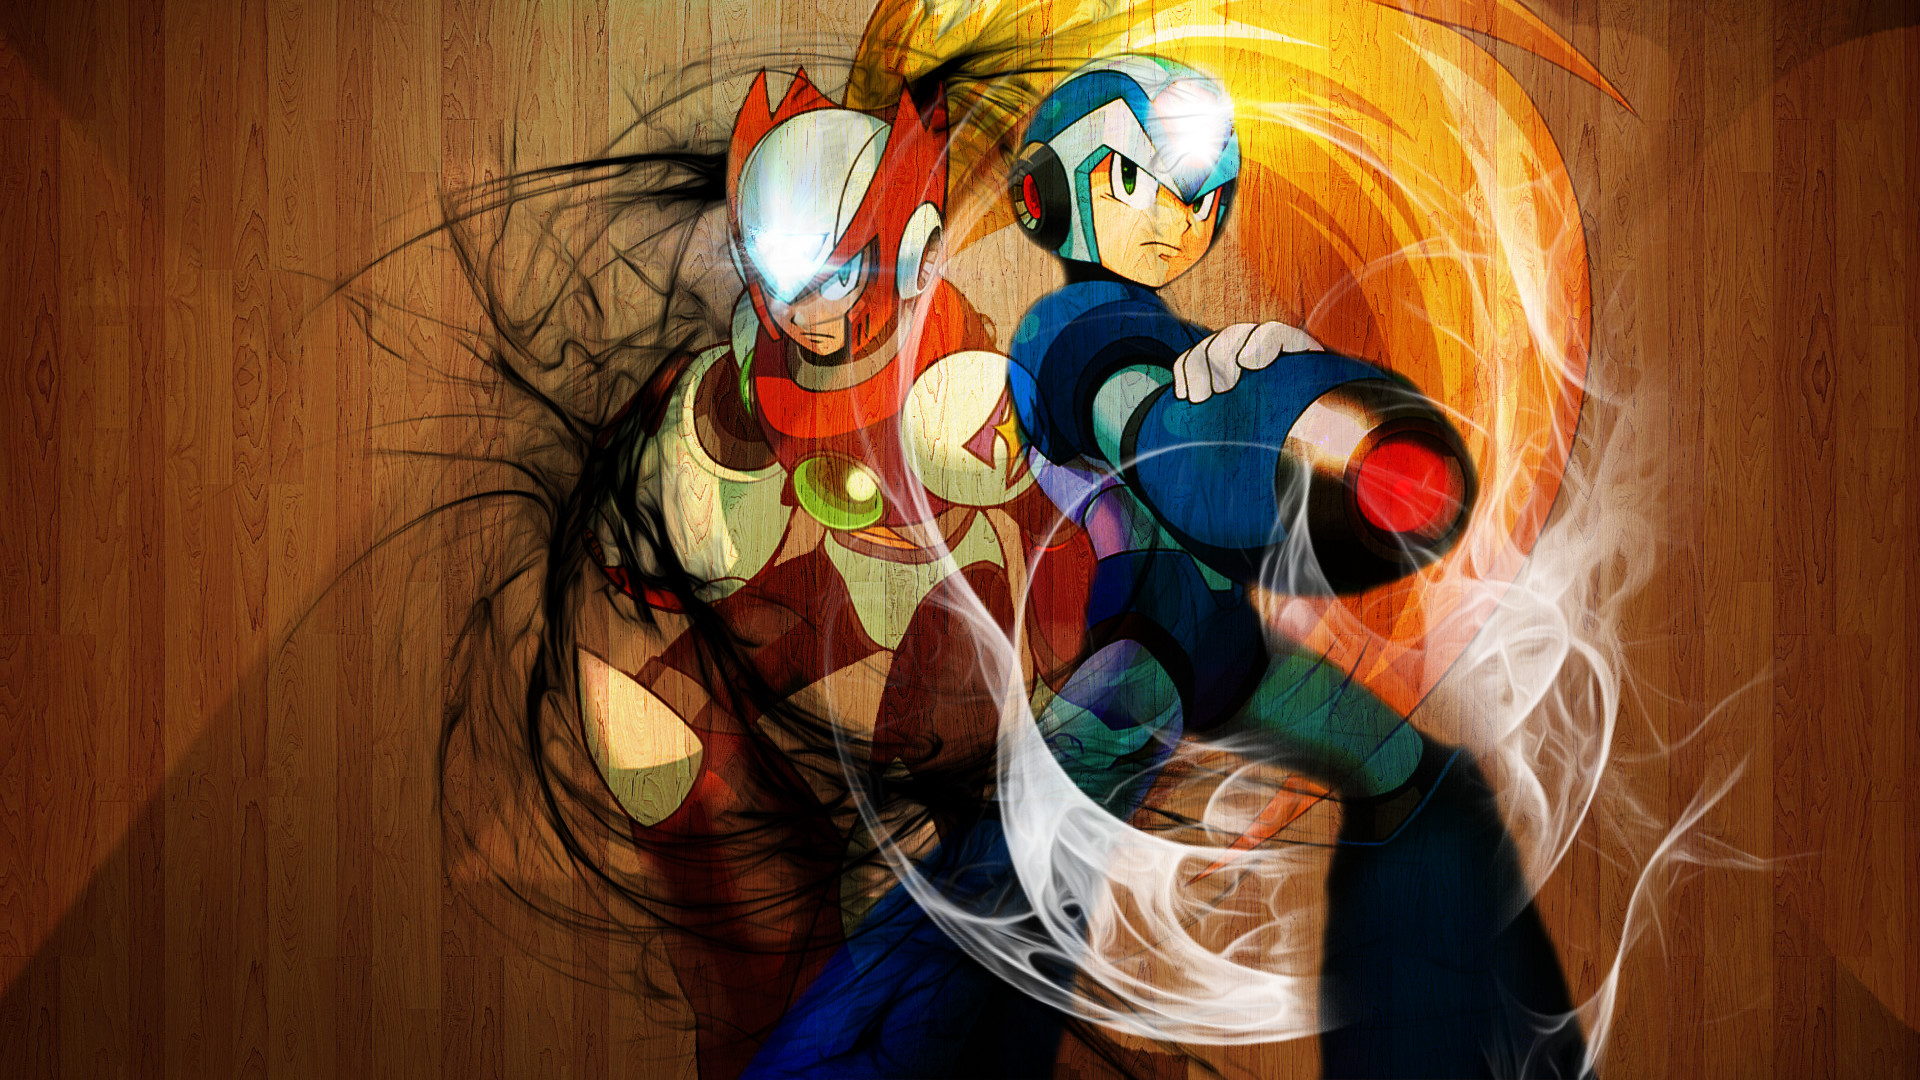 Megaman X Zero Wallpaper 1080p with HD Wallpaper Resolution px  1.57 MB Anime Ultimate 1920×1080